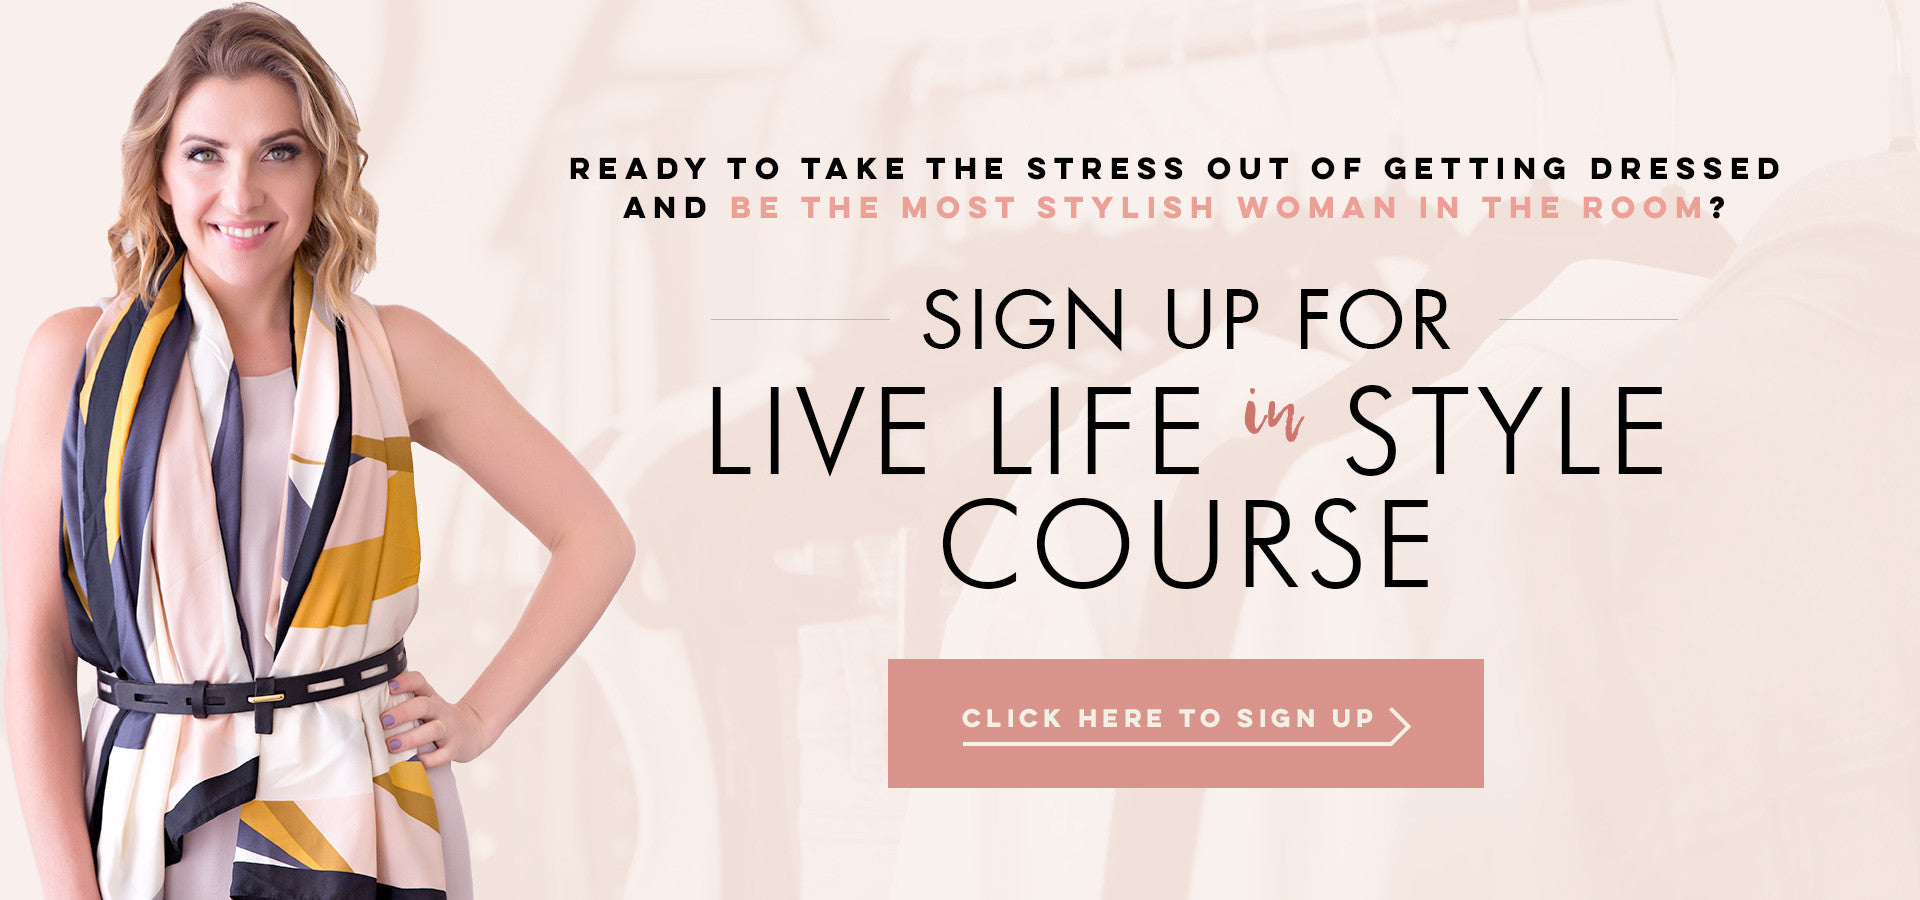 Sign Up for Live Life in Style Course